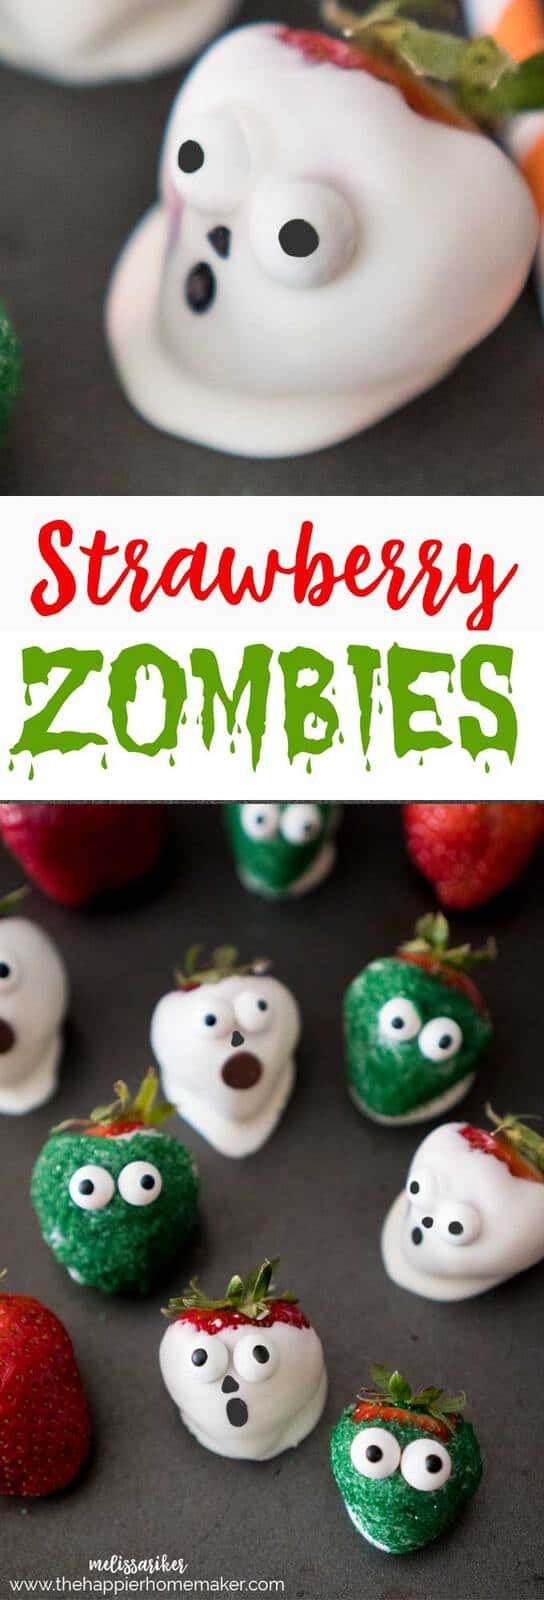 Halloween chocolate covered strawberry zombies the happier homemaker chocolate covered strawberry zombies are an easy and cute kids party treat forumfinder Choice Image